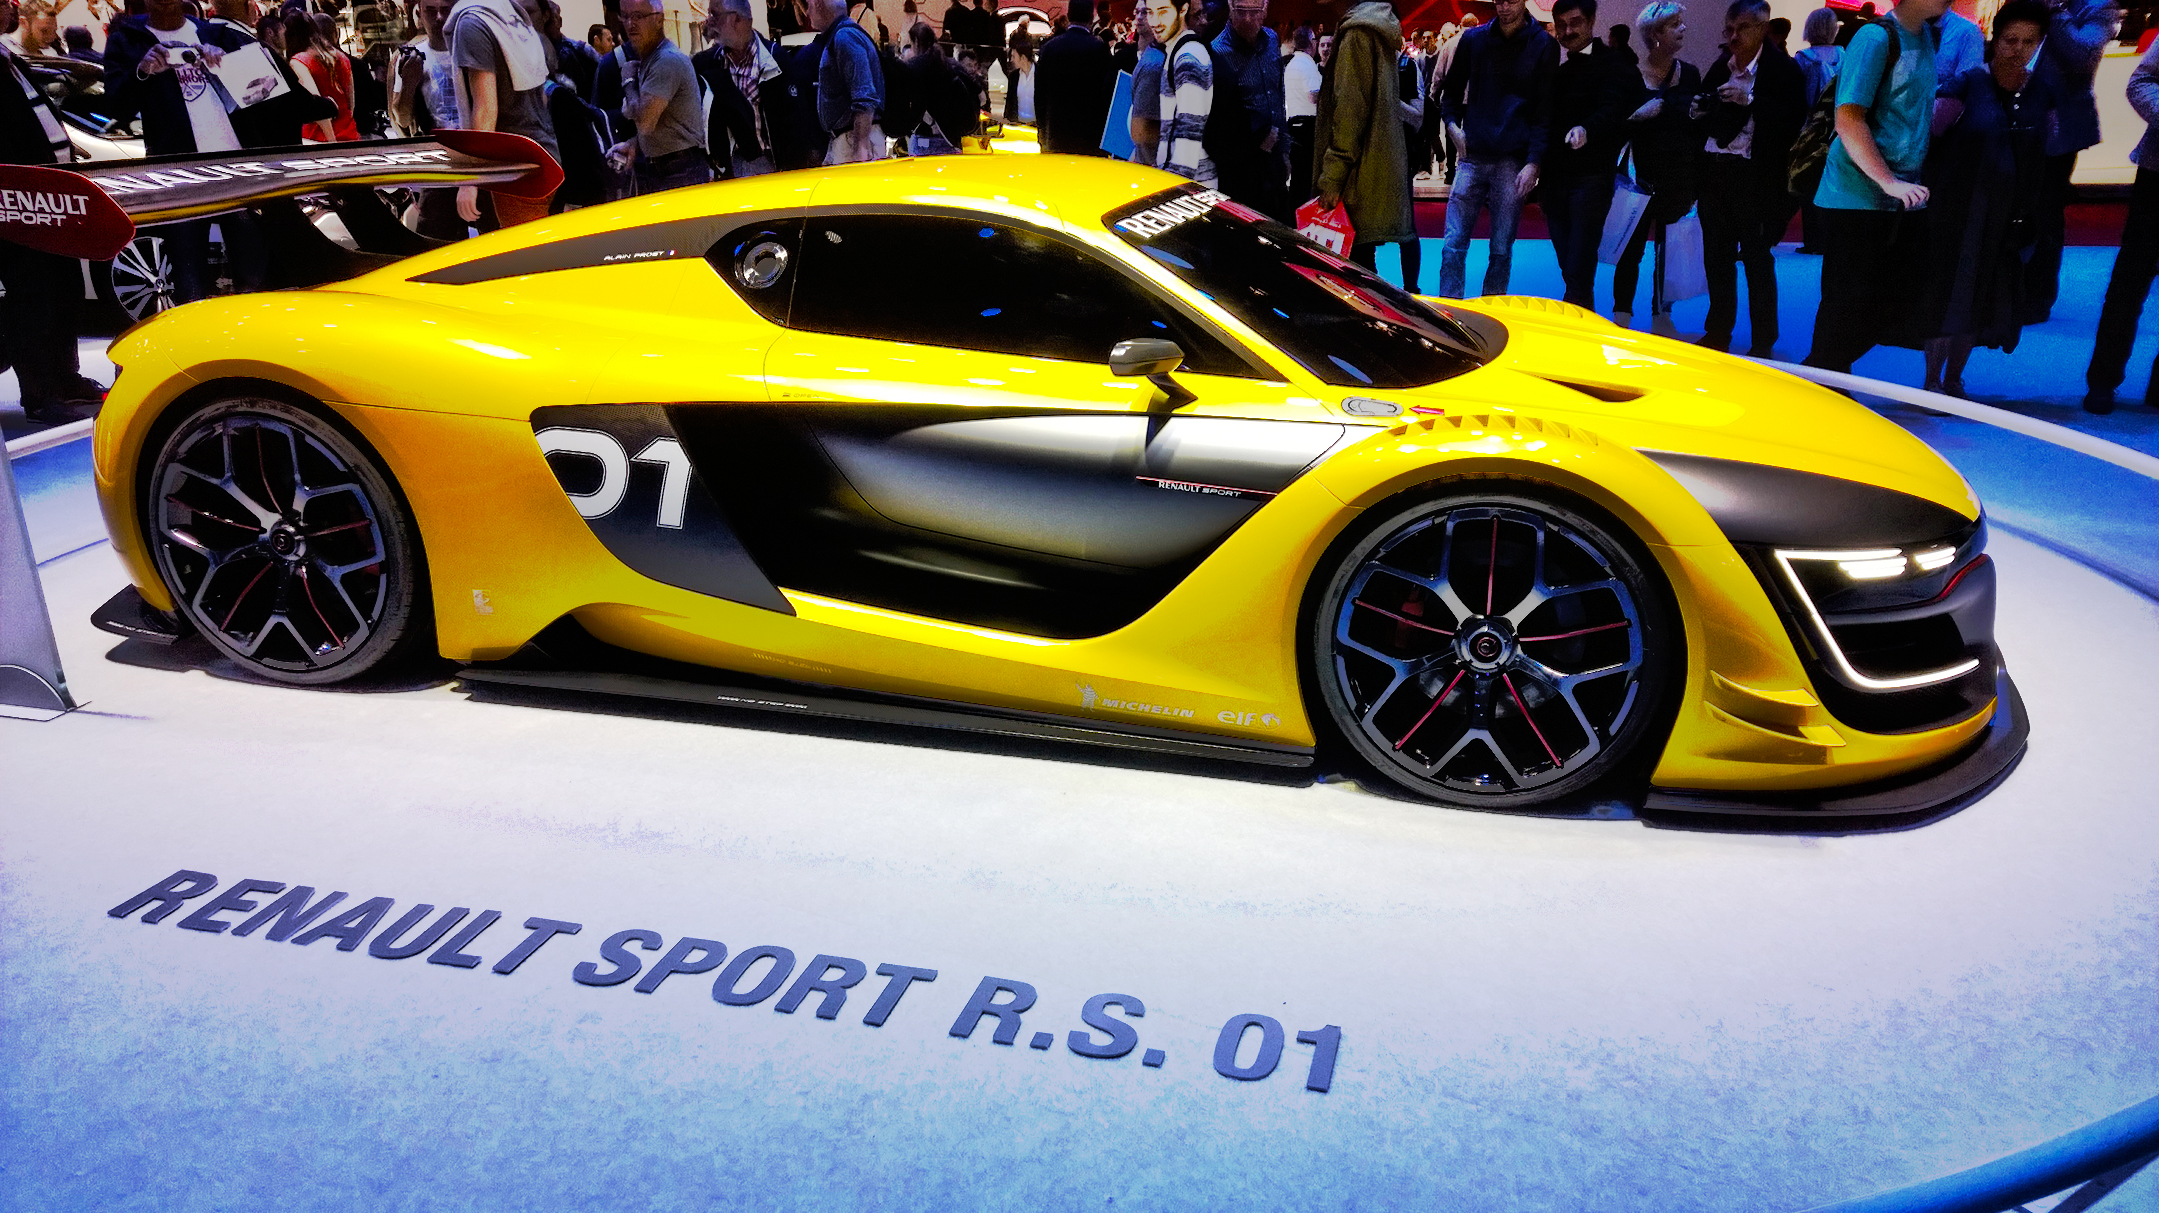 Renault R.S.01 - 2014 - Mondial de l'Automobile - Paris - photo by ELJ DESIGNMOTEUR